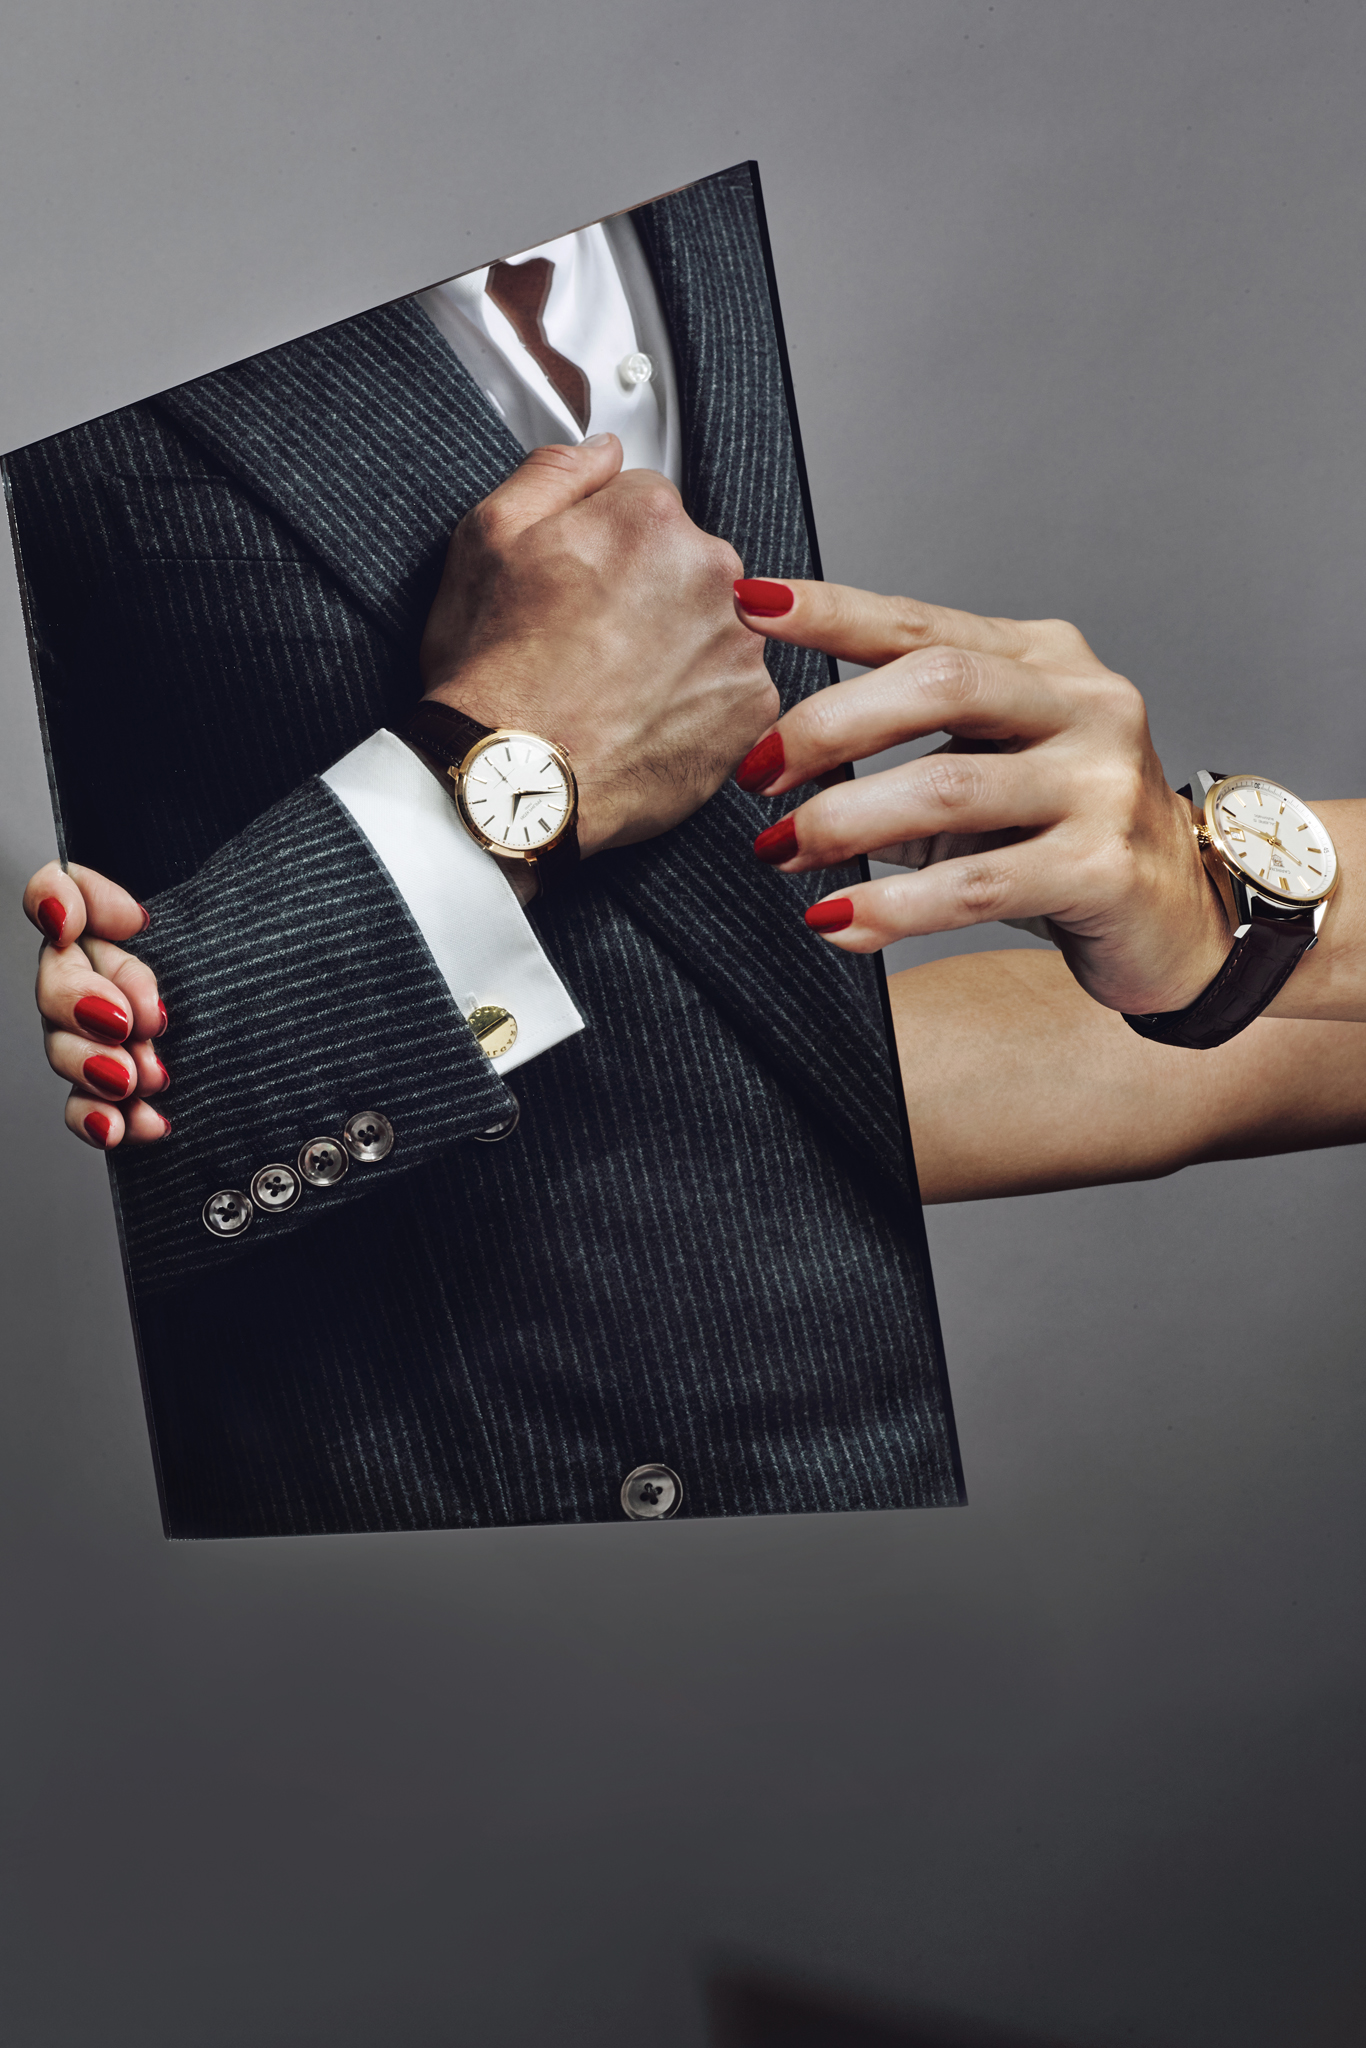 On Him: Patek Philippe's rose gold and alligator- strap watch. Caruso wool suit; Dunhill cotton shirt, Bulgari cuff links.  On Her: Tag Heuer's 18-karat gold, silver and alligator-strap watch.